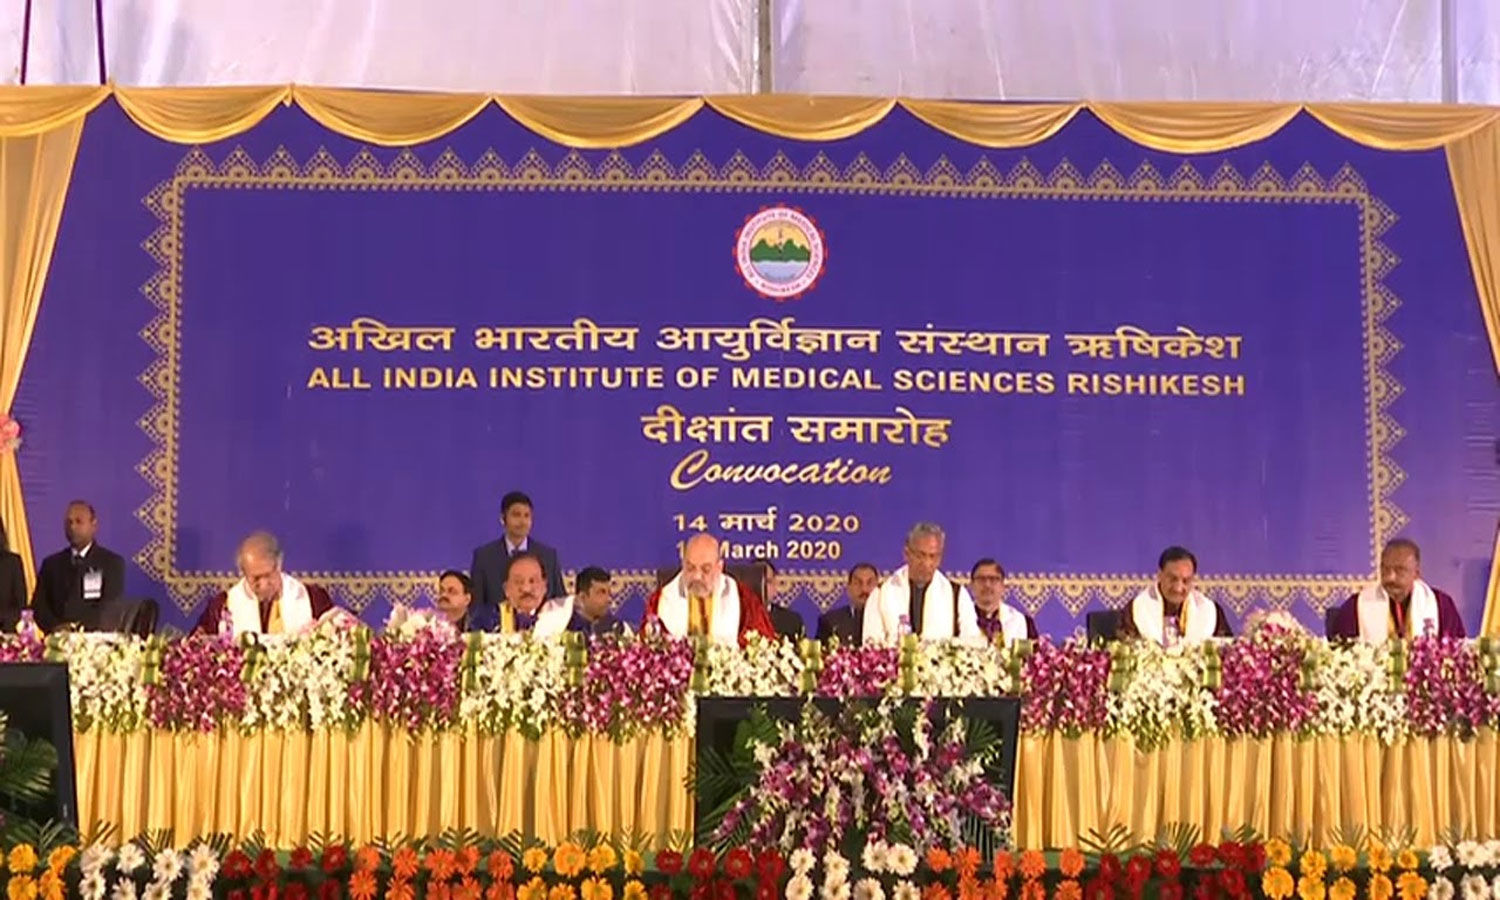 Amit Shah chief guest at AIIMS Rishikesh 2nd Convocation, promises AIIMS in each state